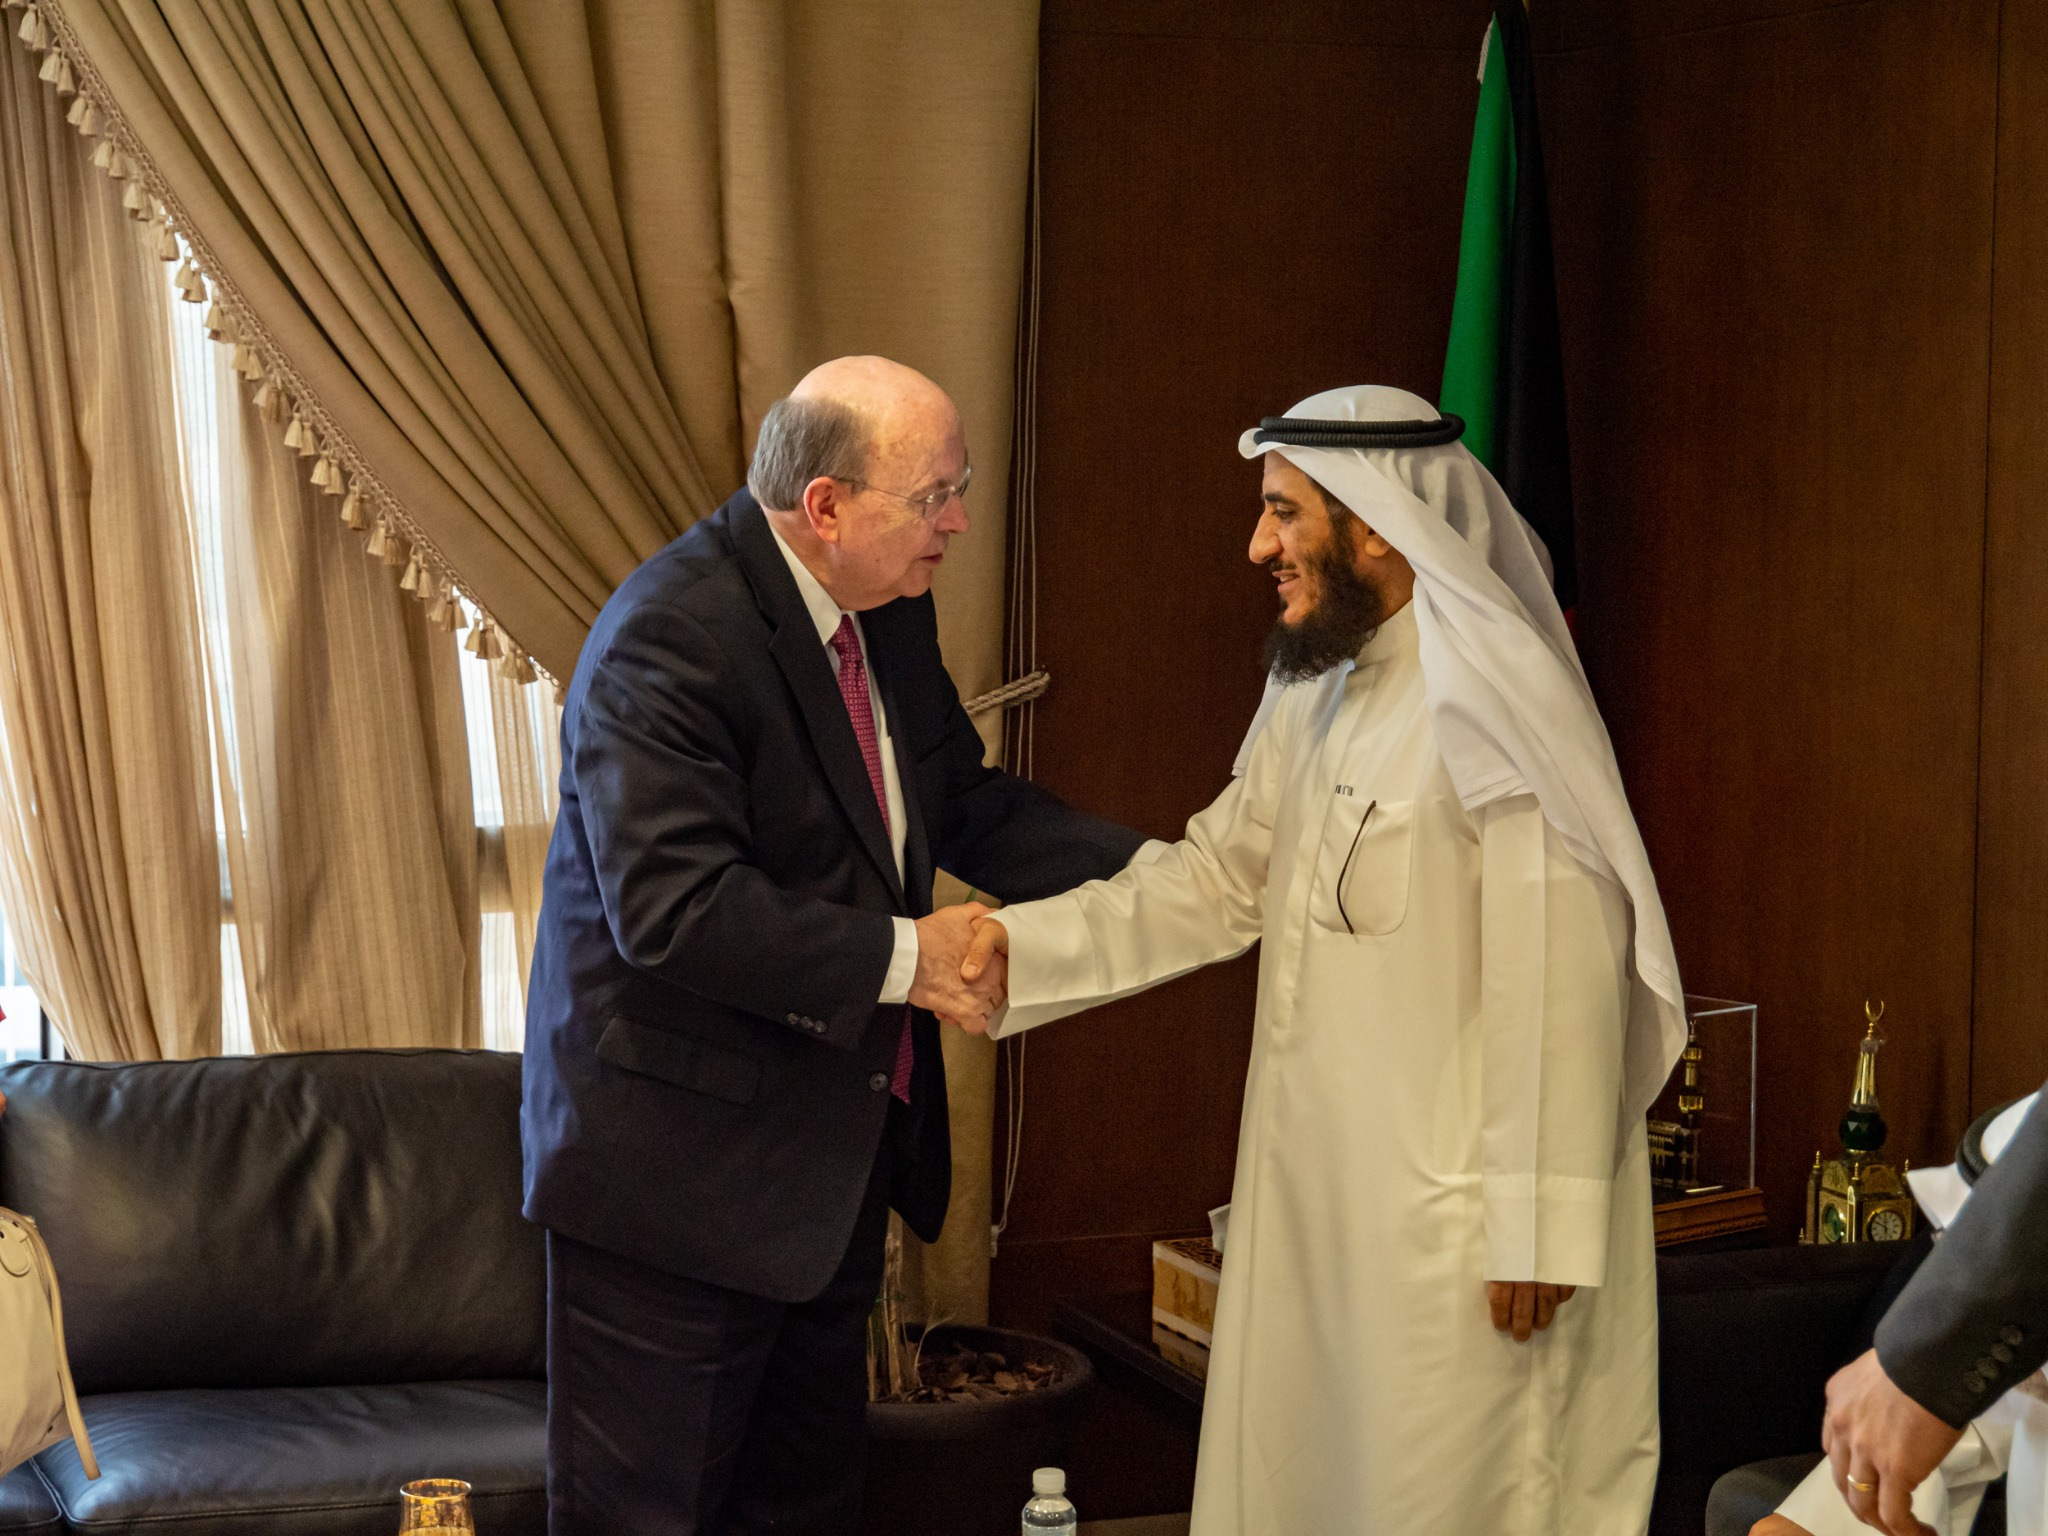 Elder Quentin L. Cook greets Mr. Fareed Emadi, secretary general of the Supreme Commission for the Promotion of Moderation in the Ministry of Awqaf, in Kuwait City on June 10, 2019.